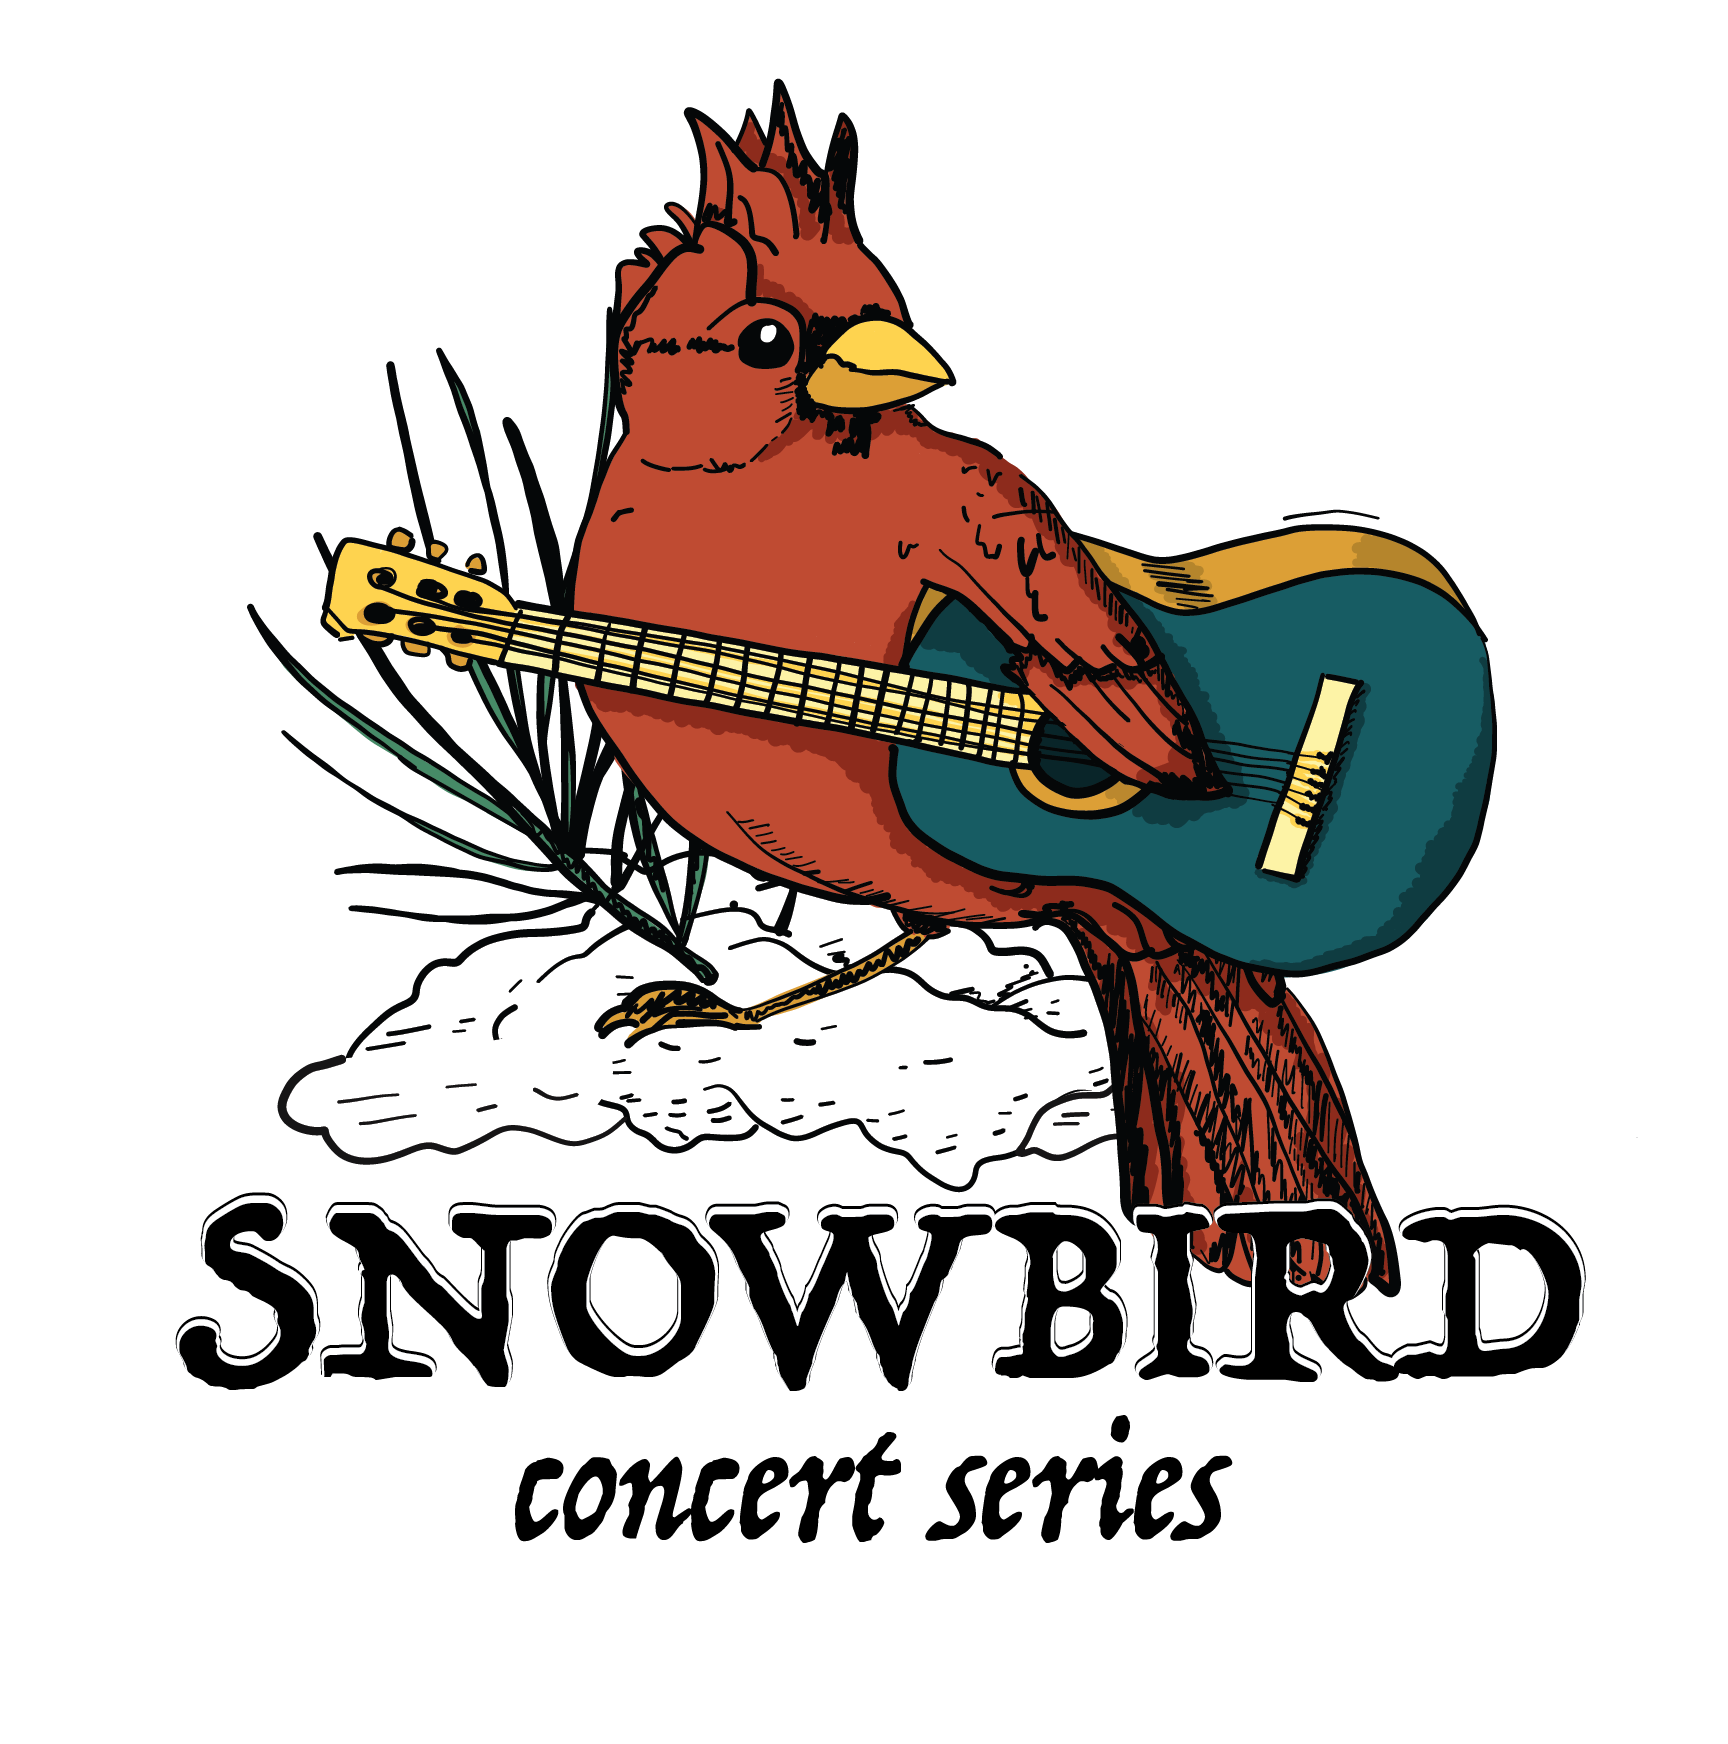 Arts scholarship concert clipart png transparent download Snowbird Concert Series - Own Your Own Universe: Home of the OYOU ... png transparent download